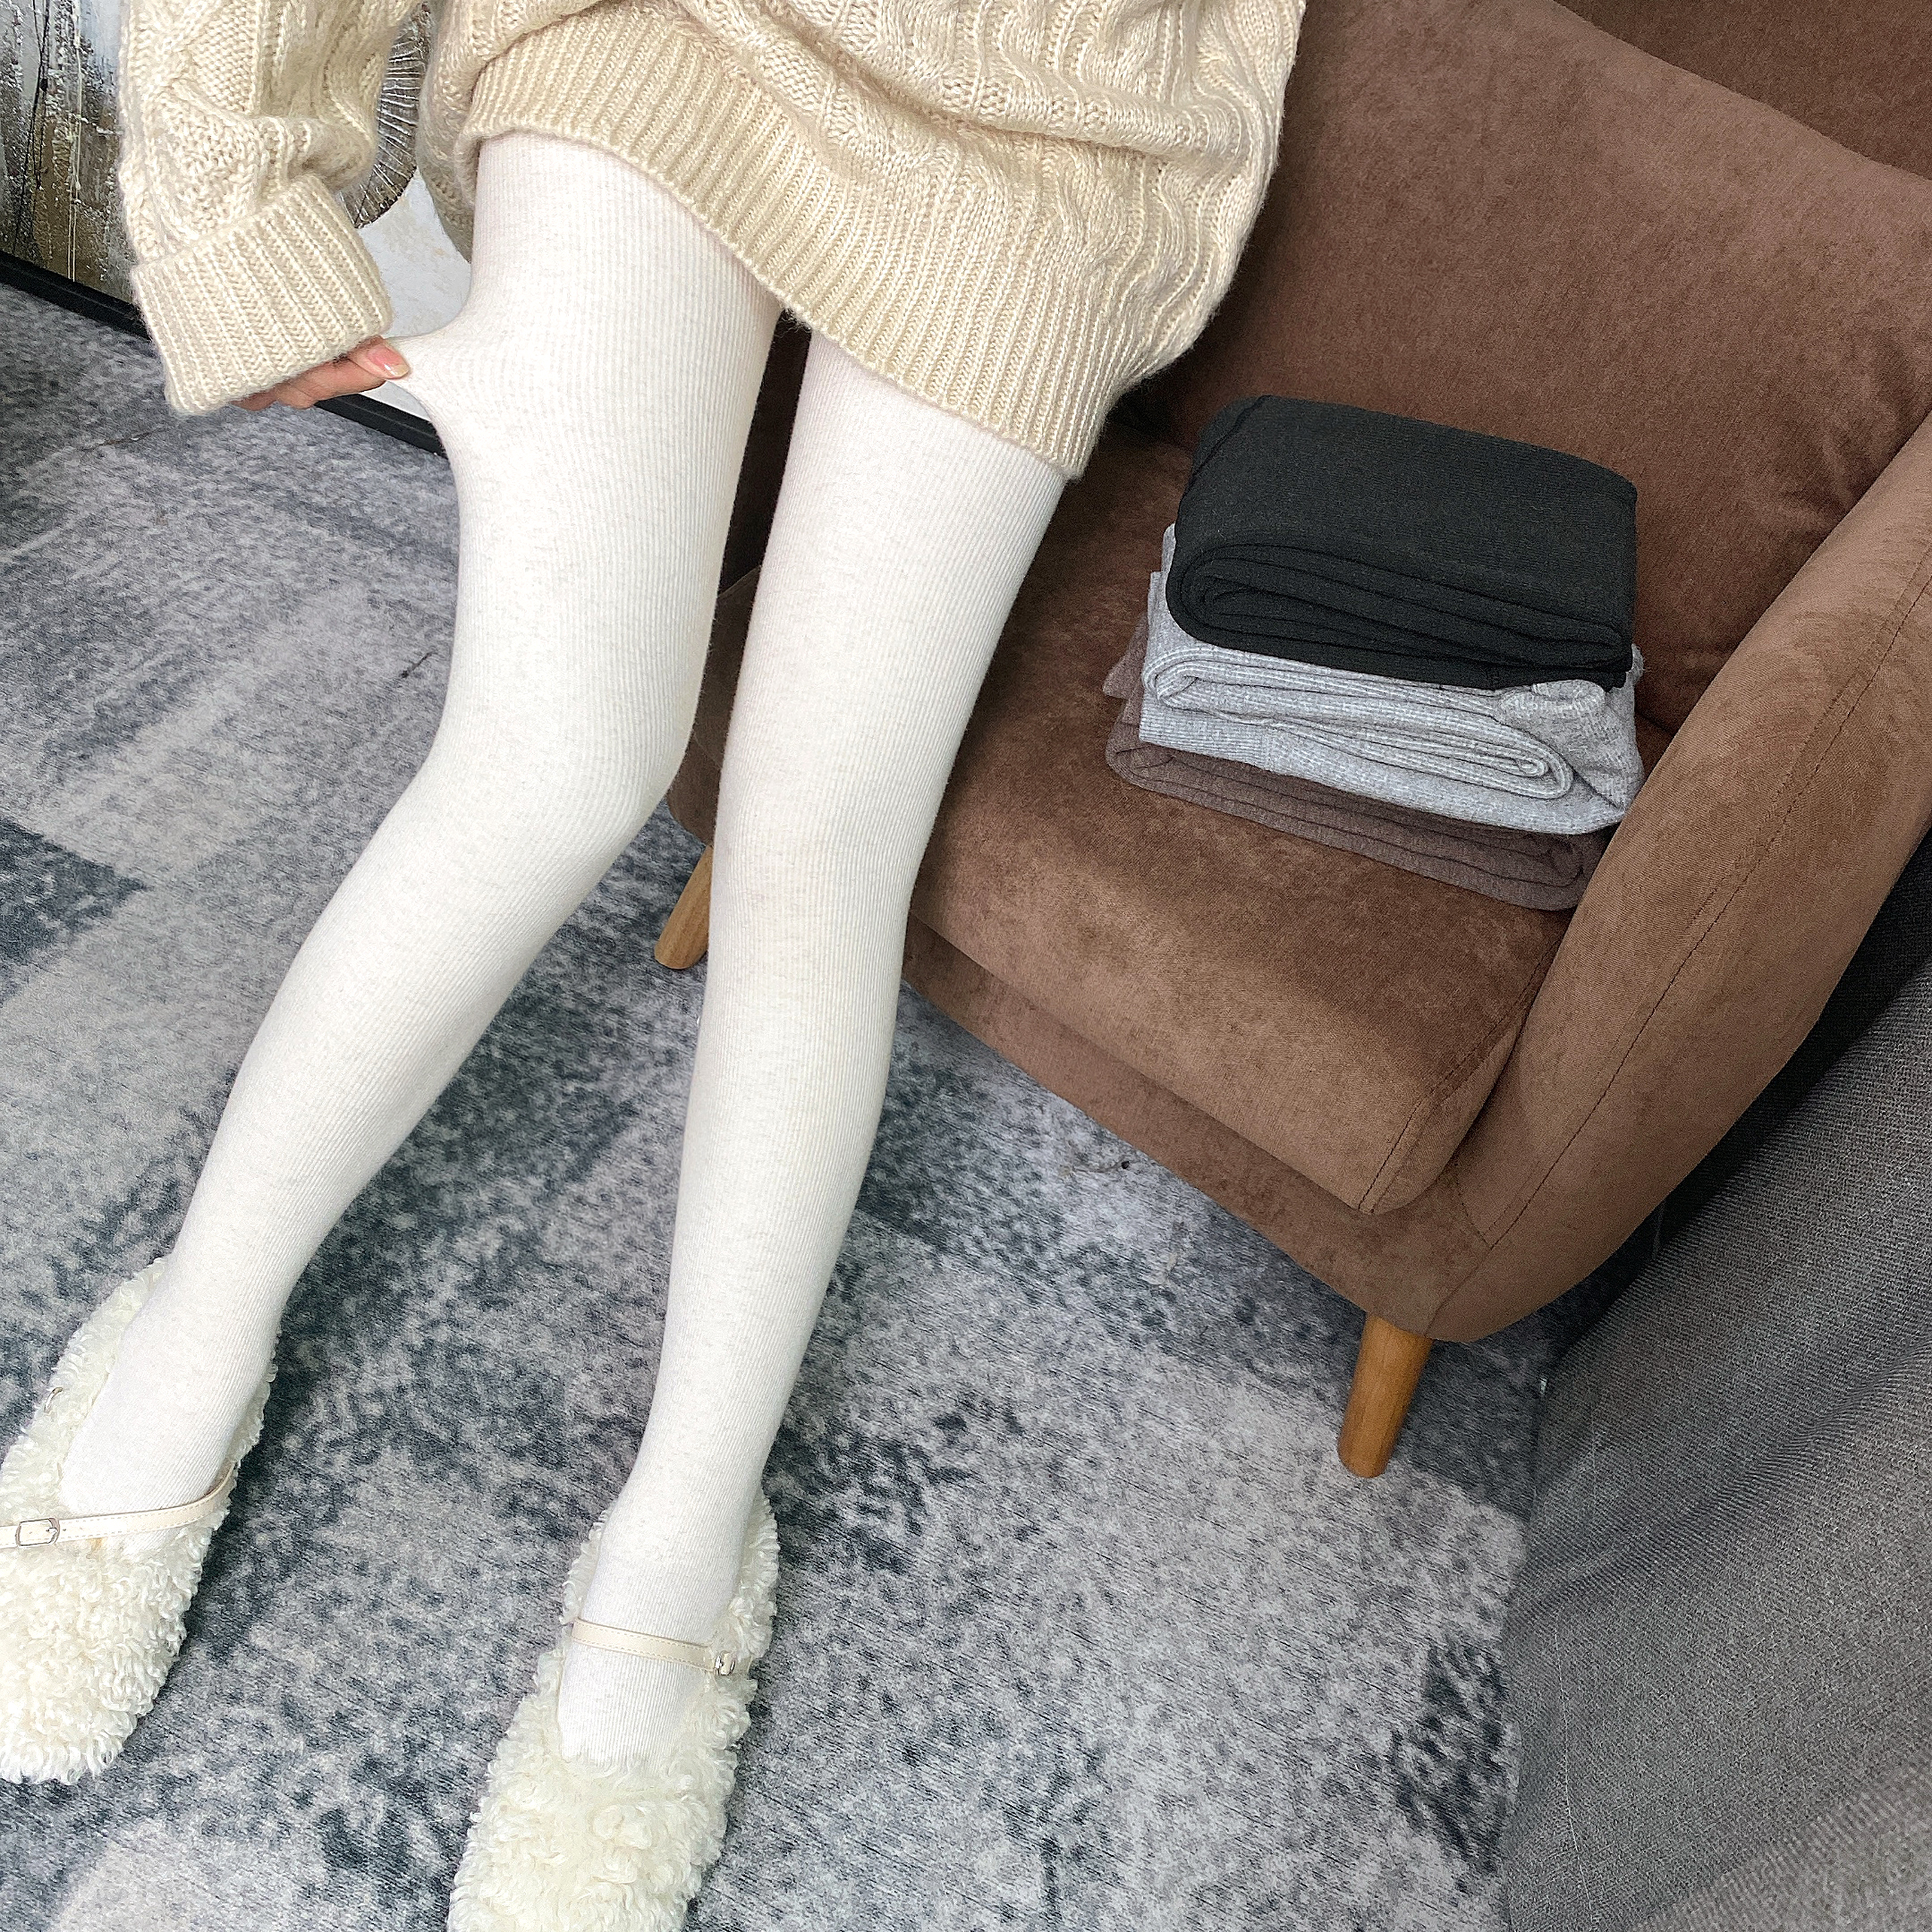 MISHOW 2019 Winter Fashion Women Warm Leggings Female High Waist Thick Pants Solid All-Match Sexy Leggings MX19C2607